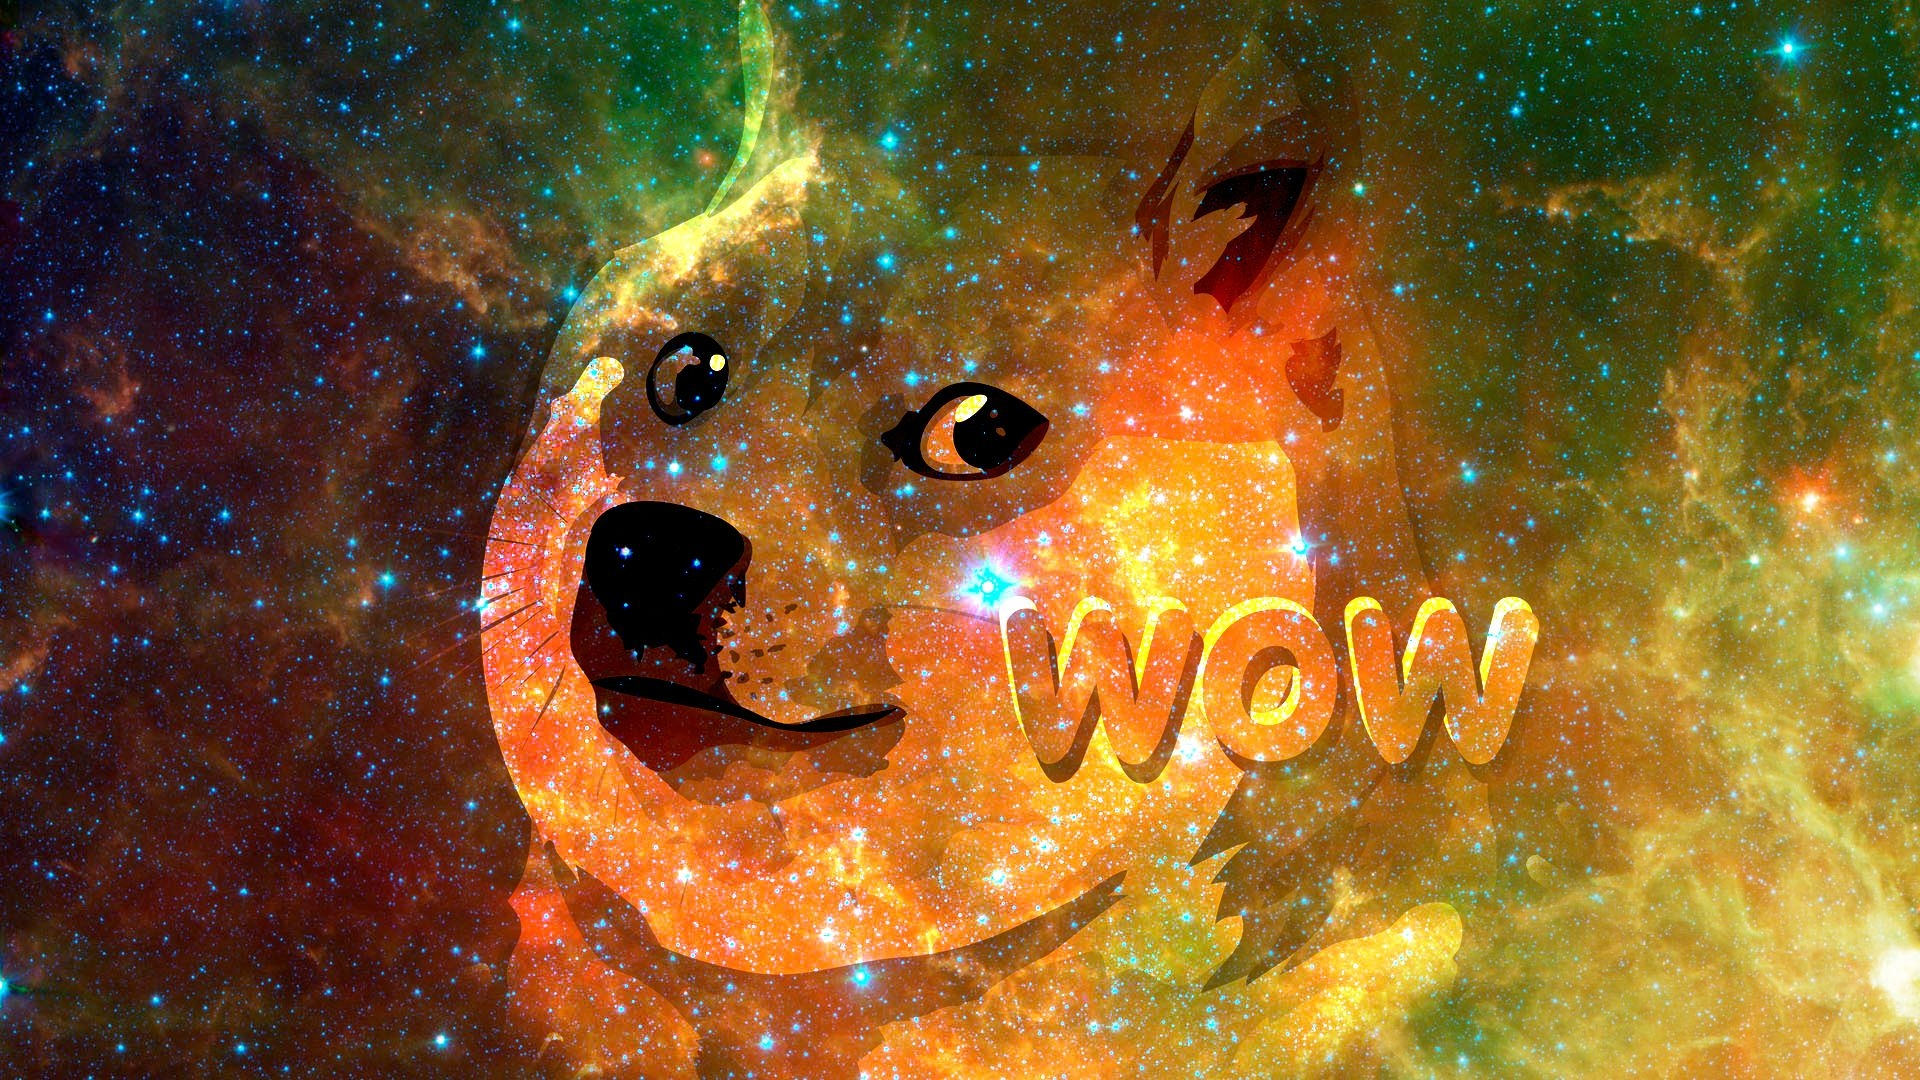 wow doge   Doge Wallpaper 1920x1080 43826 1920x1080